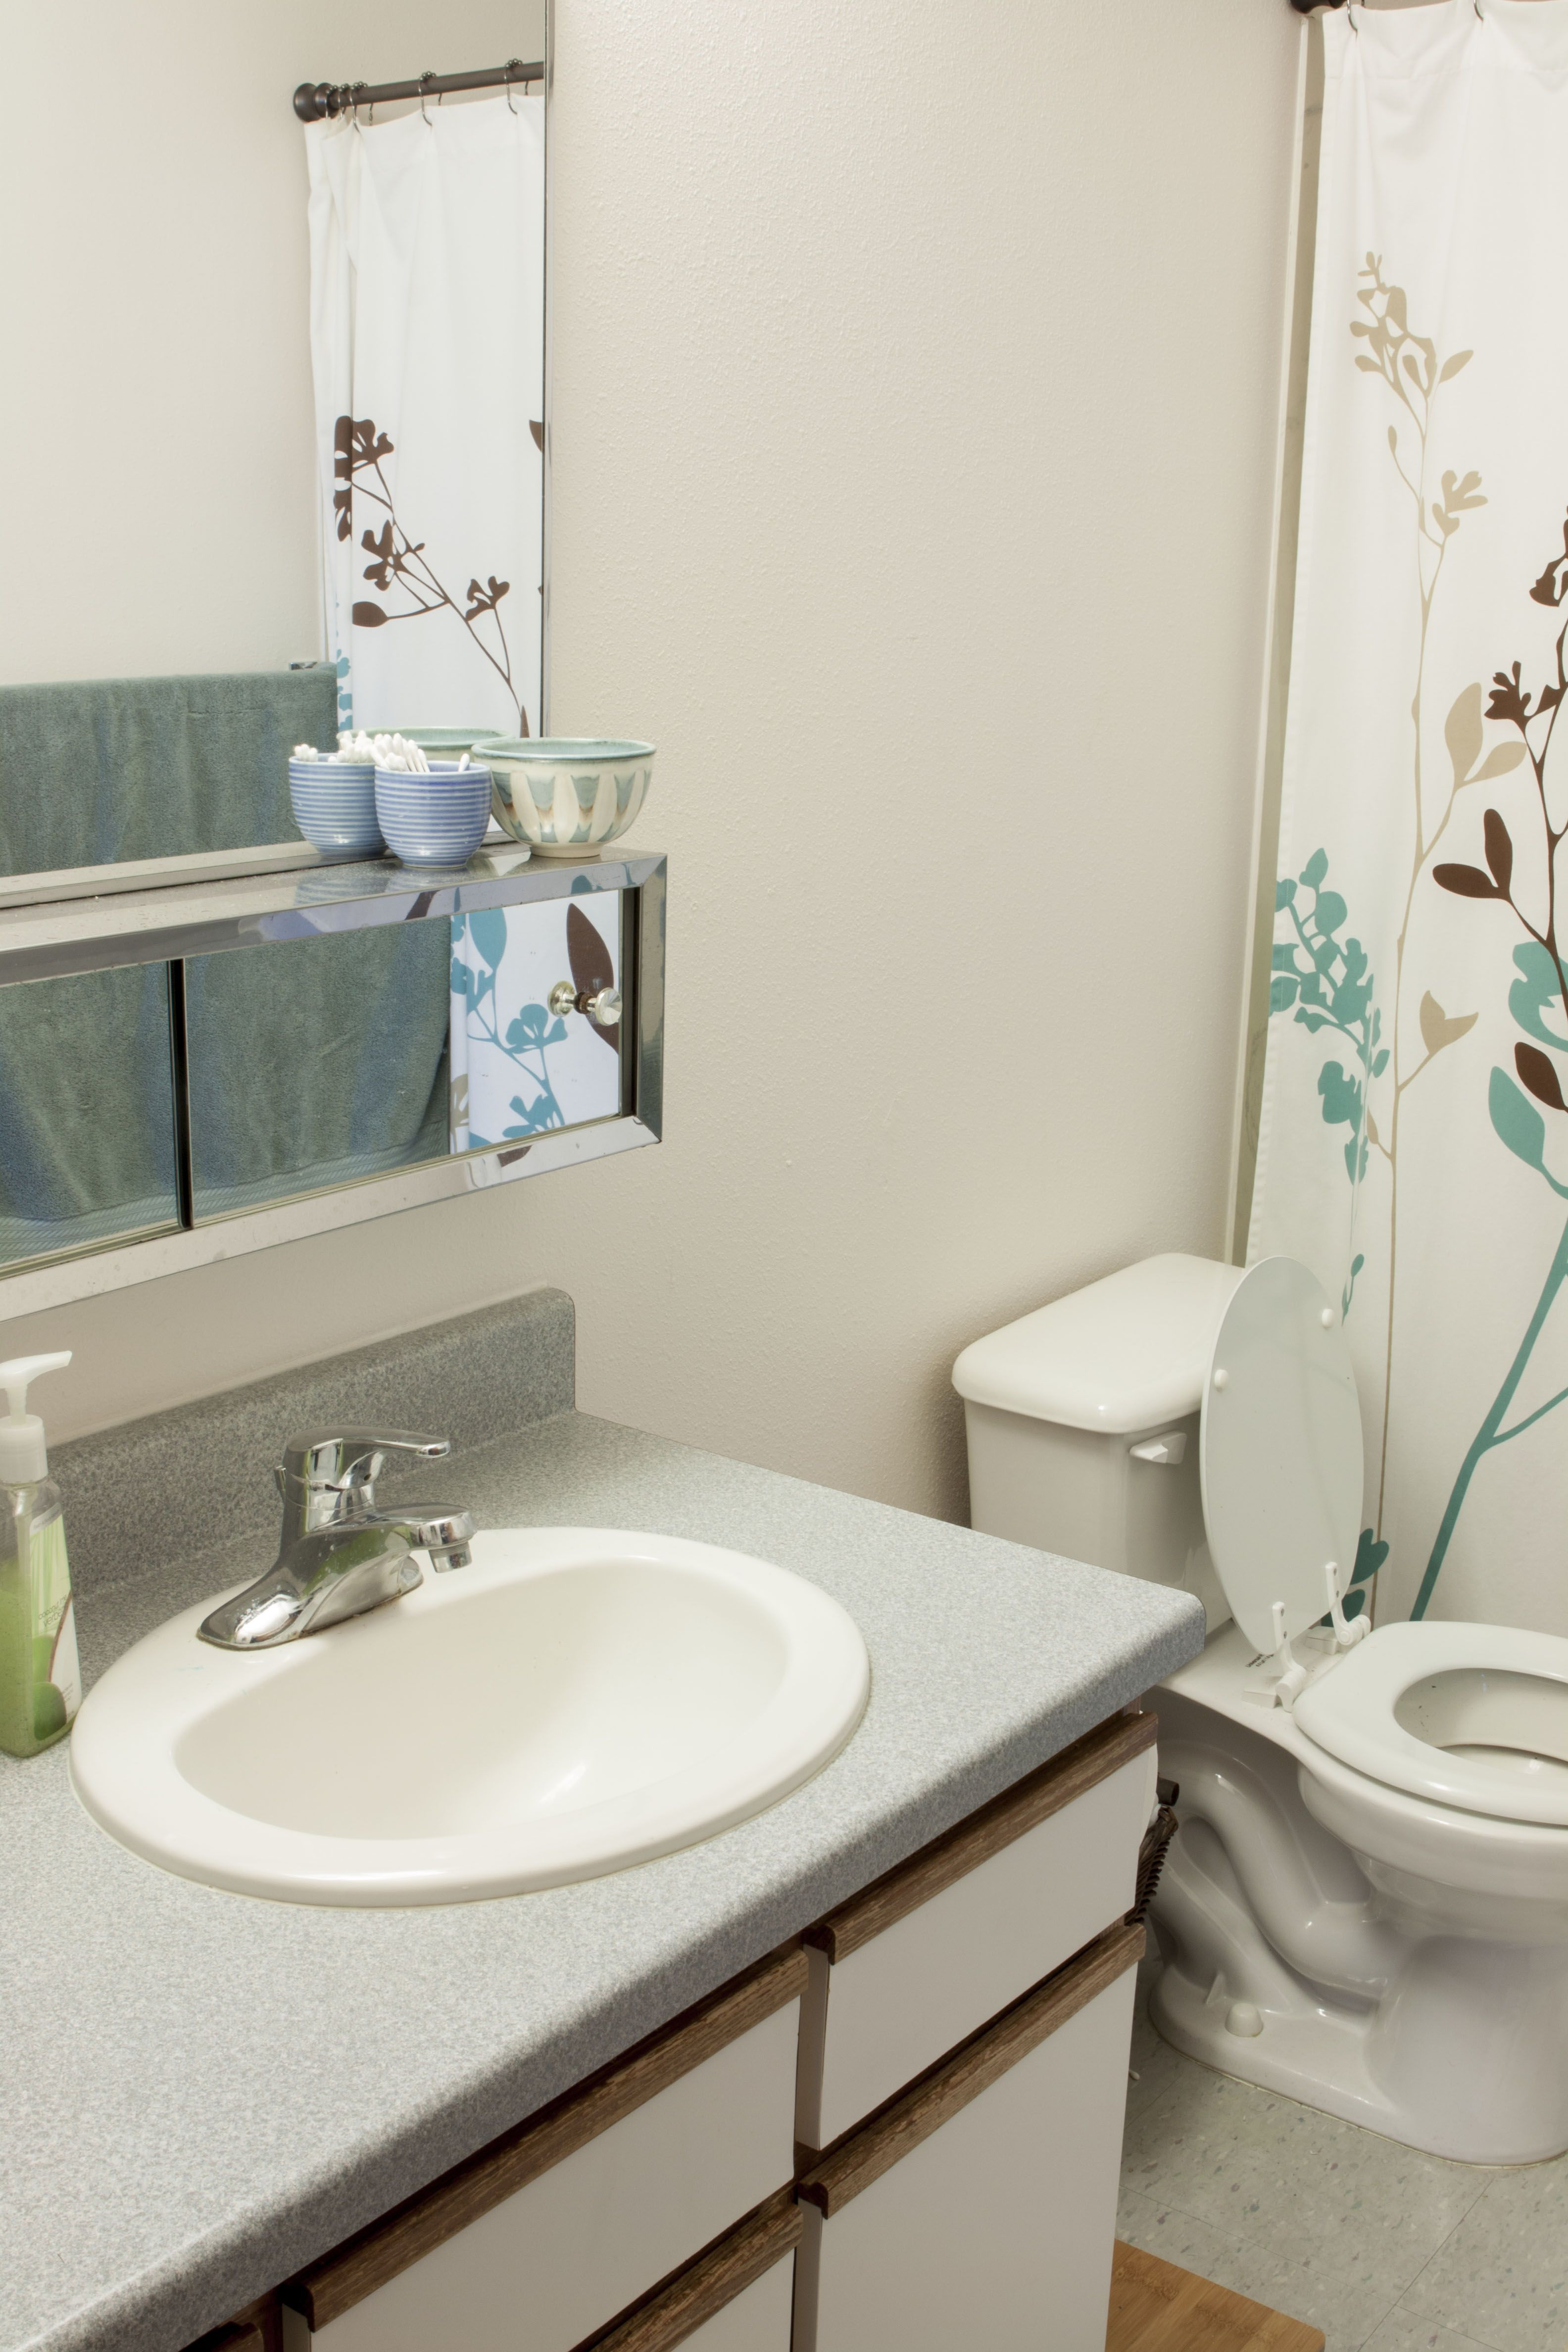 Wightman 3 Bedroom Townhouse Upstairs Bathroom